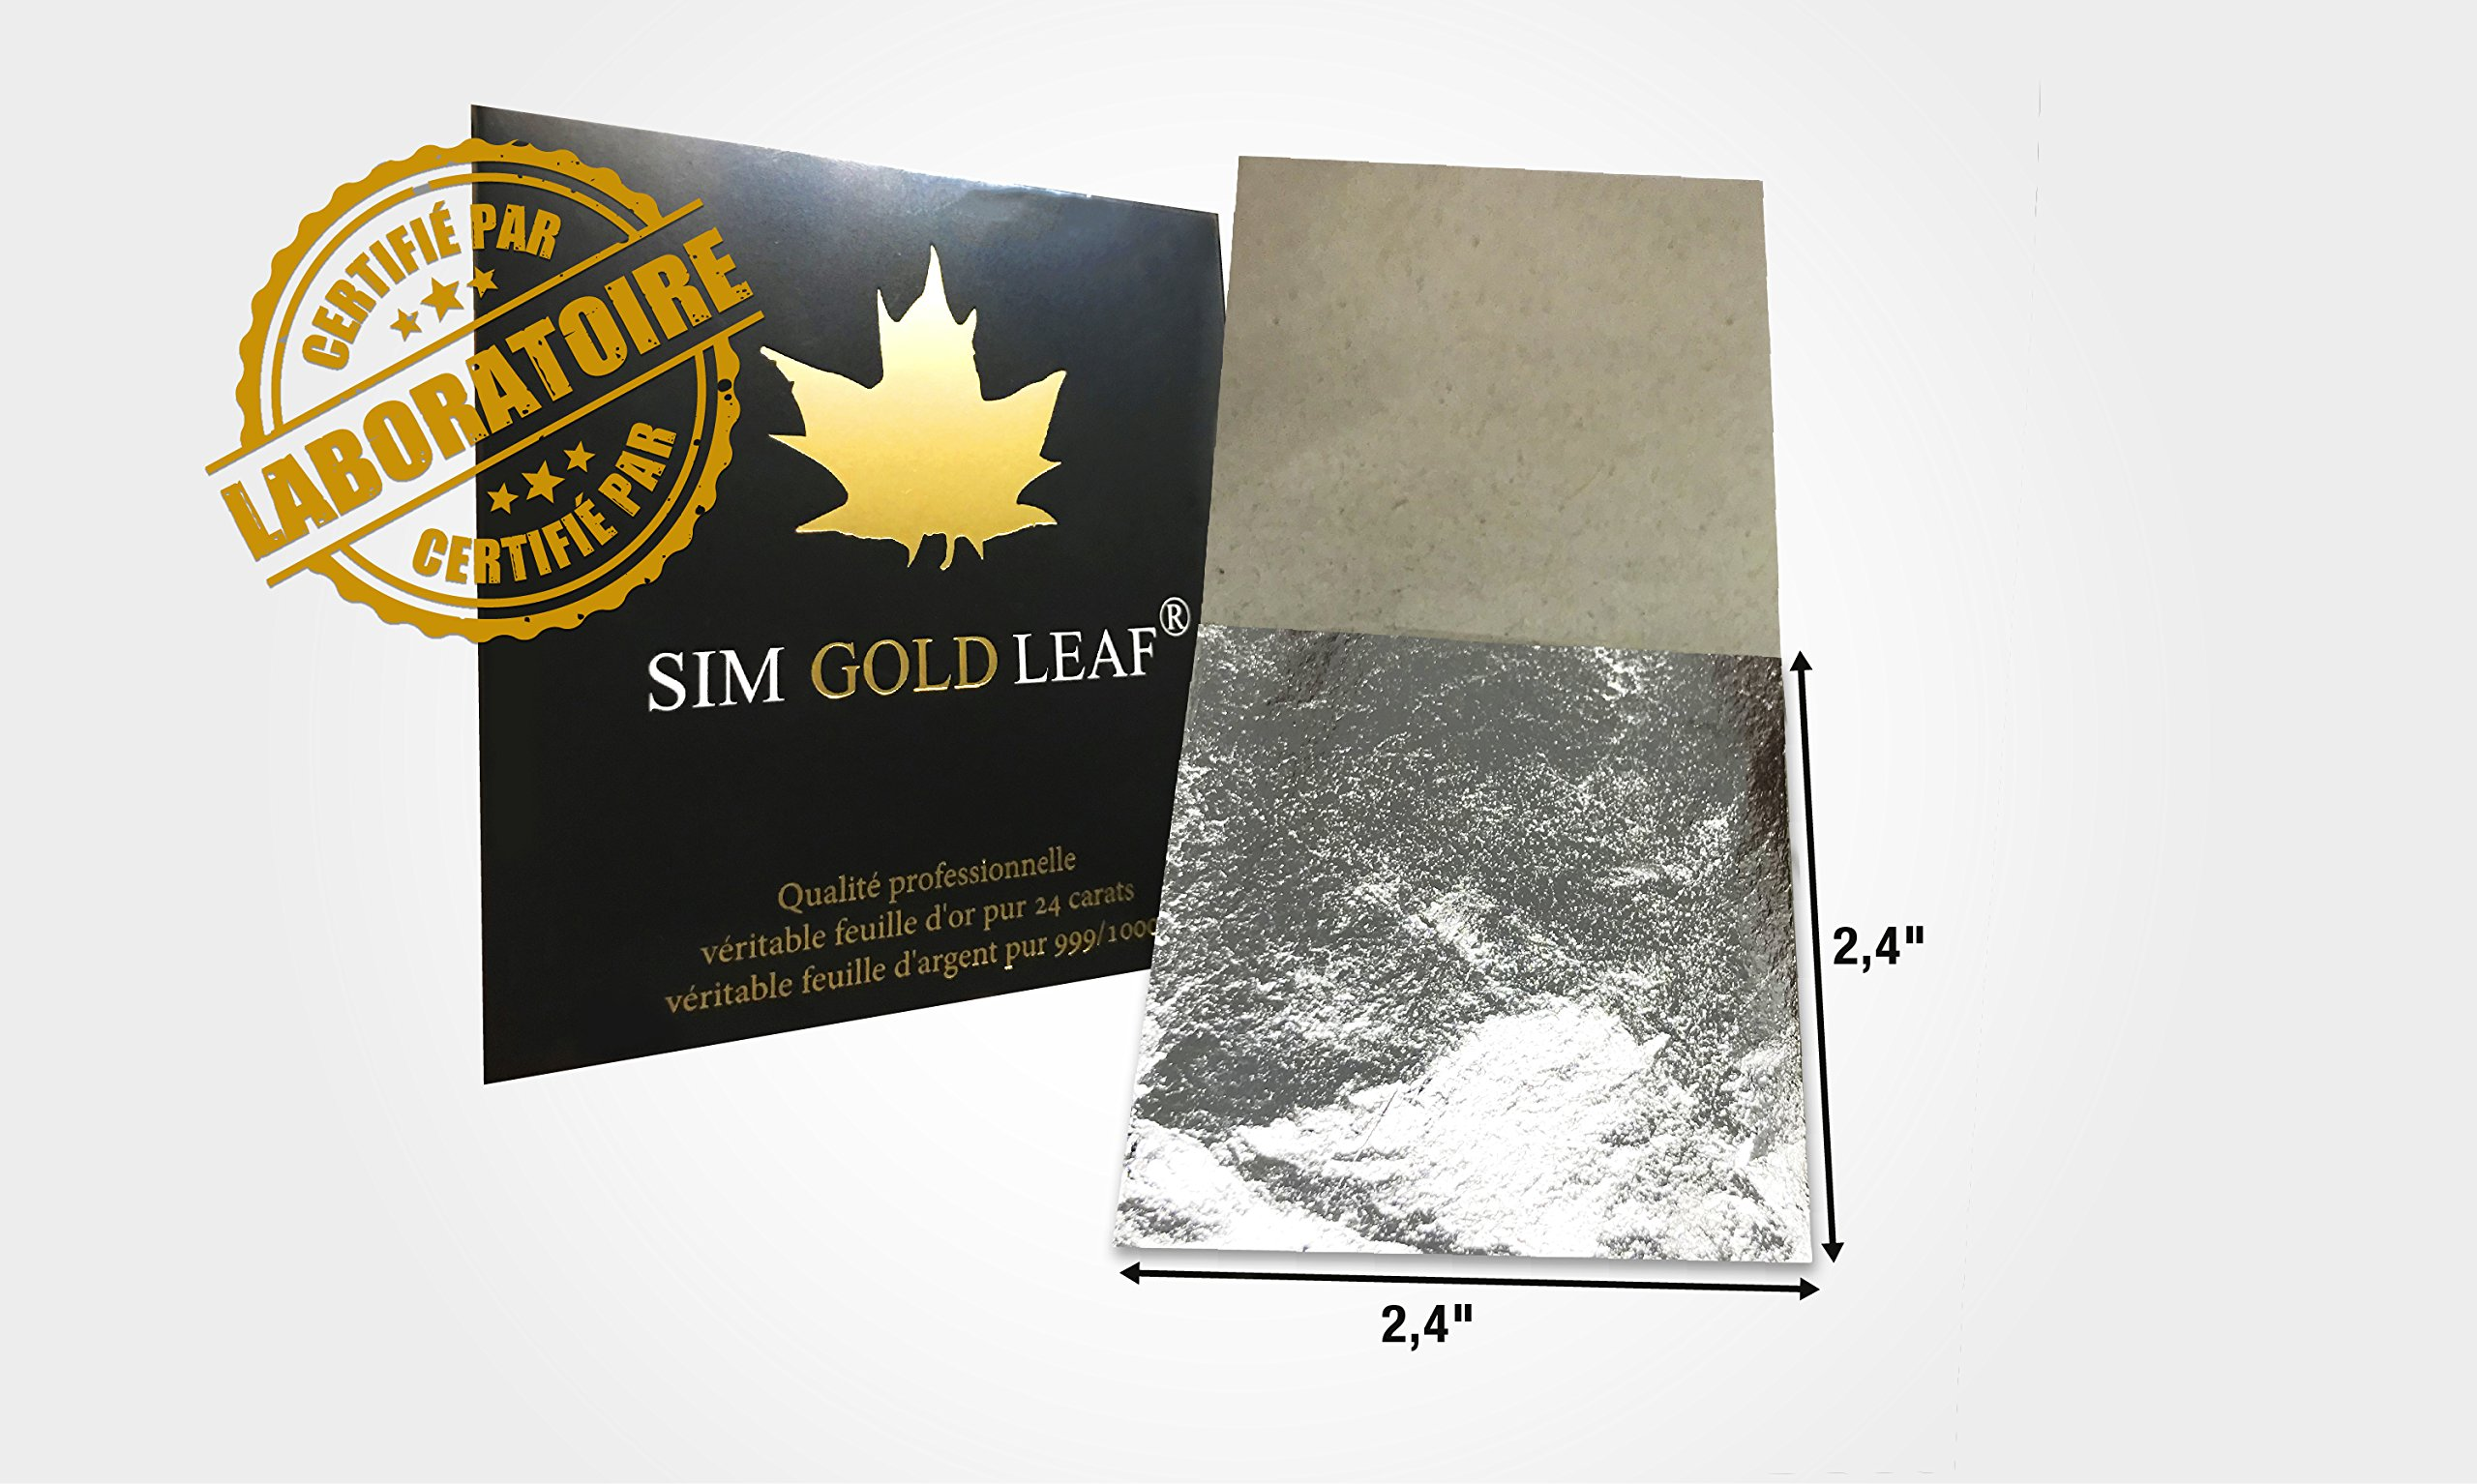 Premium Genuine Silver Leaf Sheets, Professional Quality, 20 Sheets, 2,4 inches 6 x 6cm (Loose Leaf/Interleaf Sheets) 100% Edible Silver